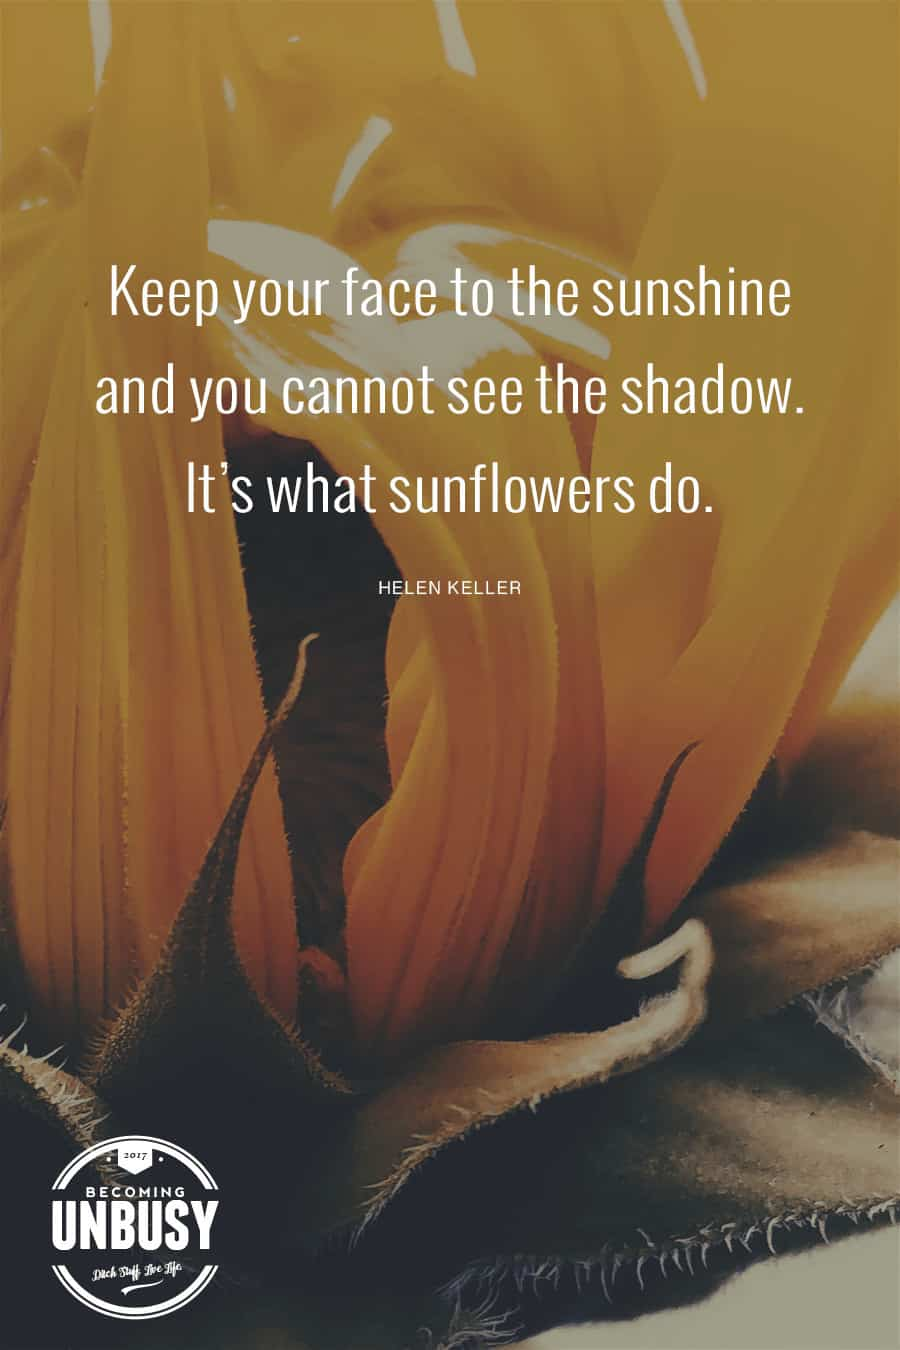 Keep your face to the sunshine and you cannot see the shadow. It's what the sunflowers do. - Helen Keller #quote #sunflowers #BecomingUnBusy *love this article and this site!